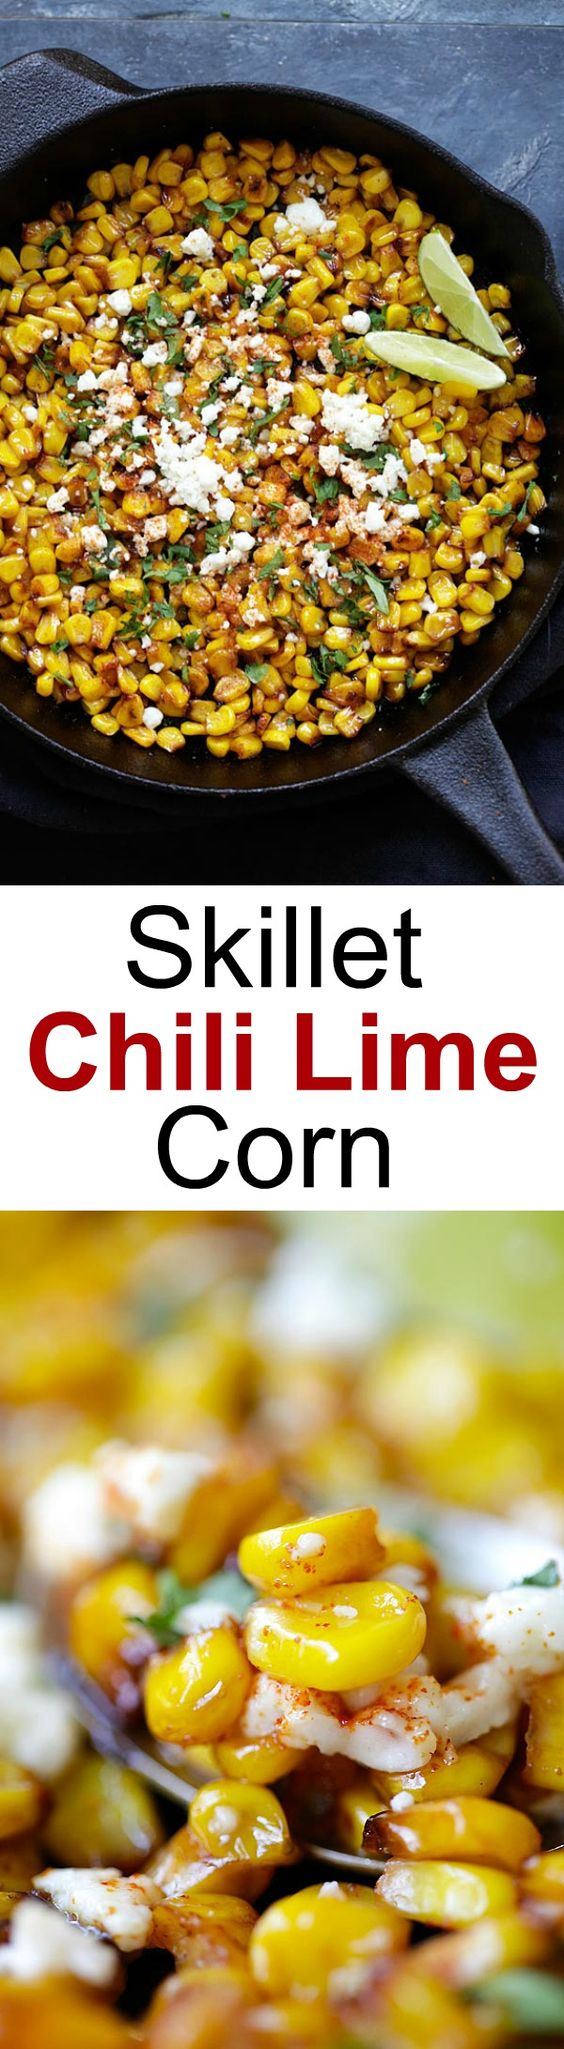 #thanksgiving #sidedish Skillet Chili Lime Corn - the best corn with chili, honey, lime and cheese. Takes 15 mins to make and a perfect side dish for any meals | rasamalaysia.com